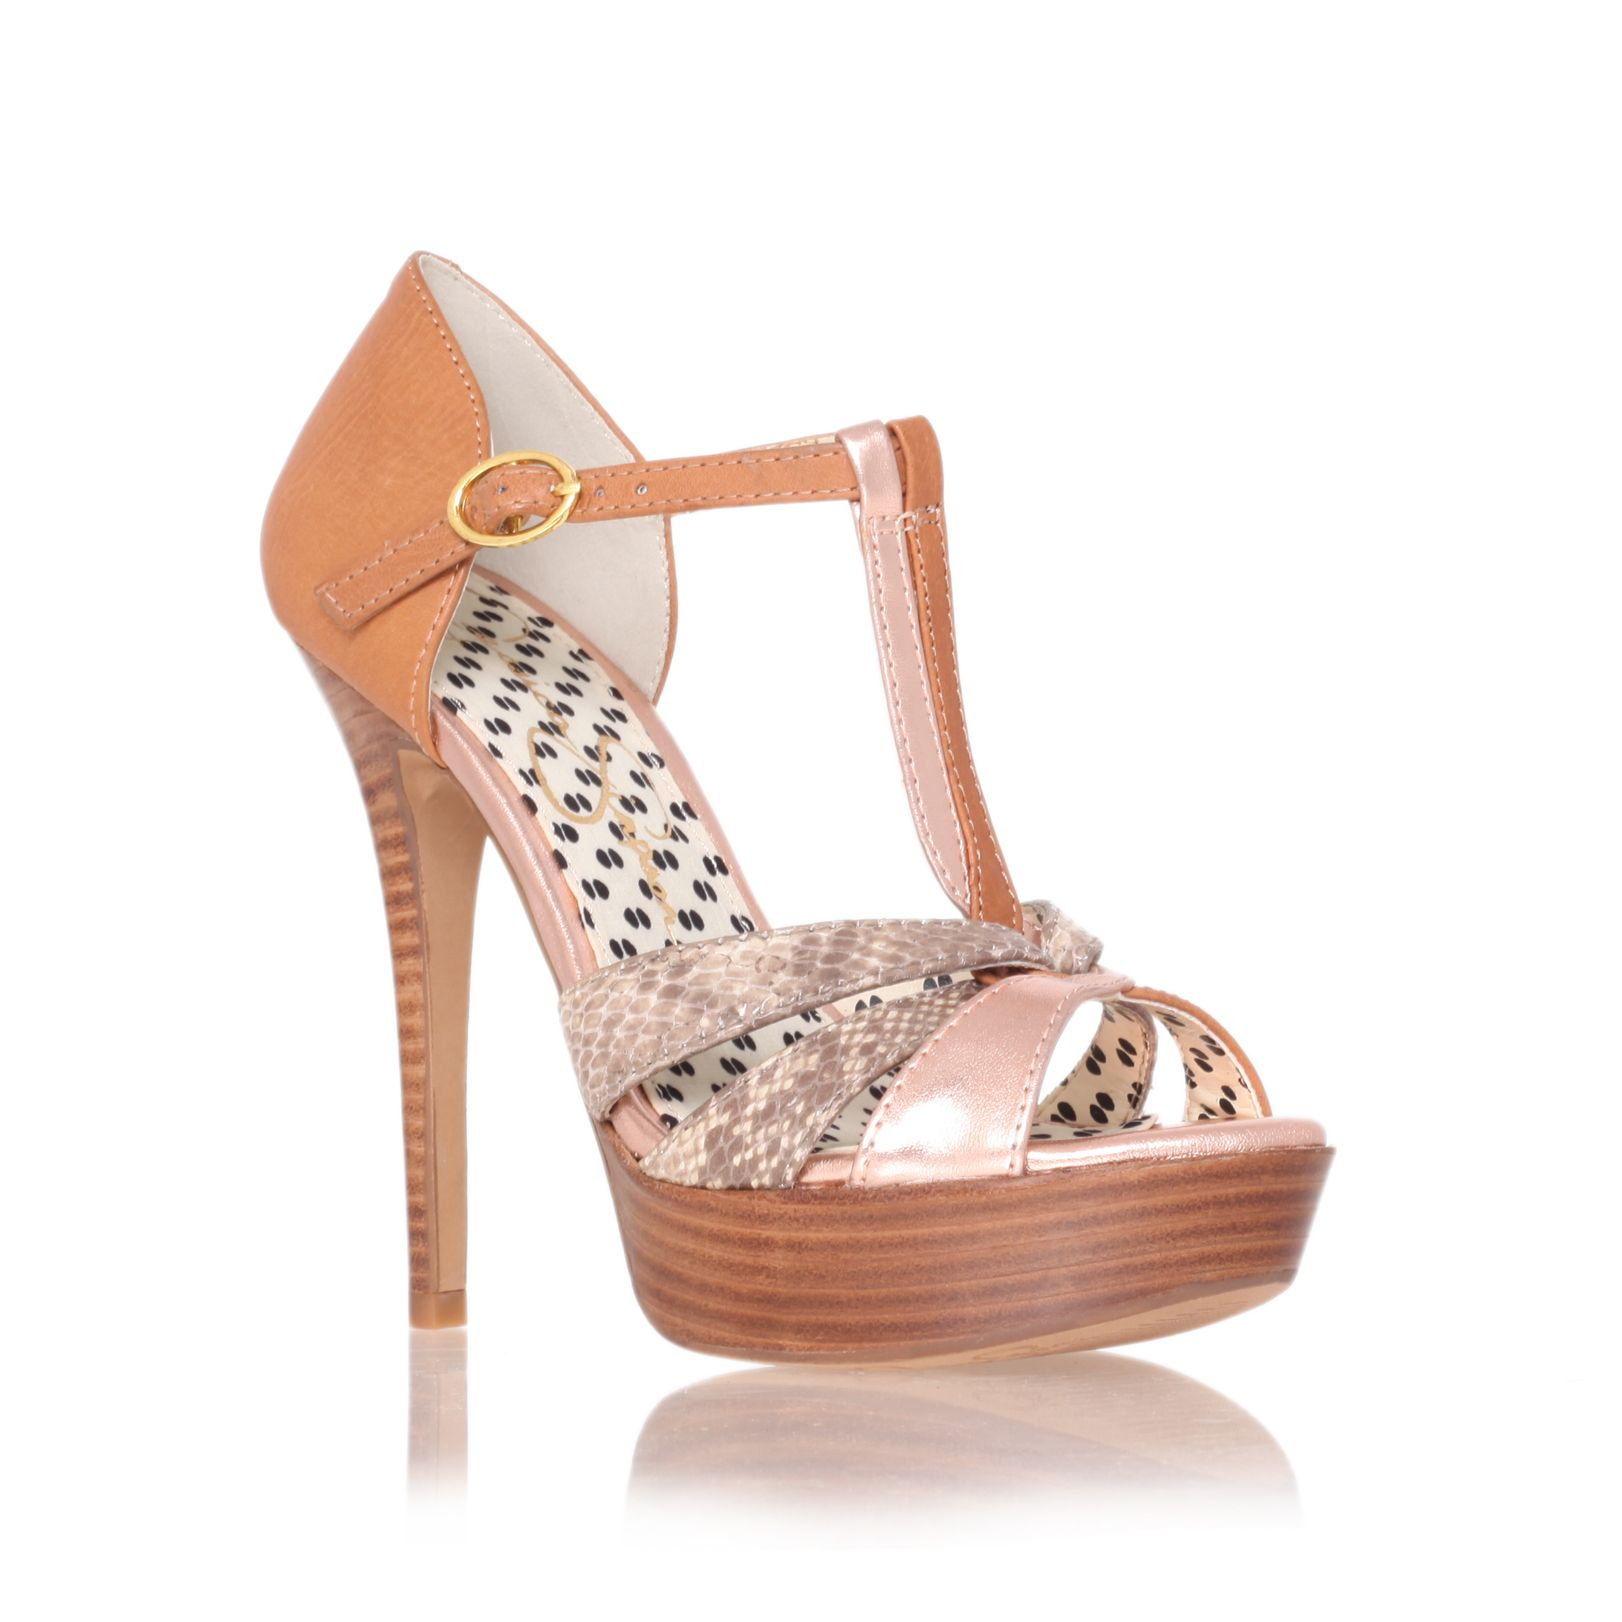 Jessica Simpson Shoes On Sale